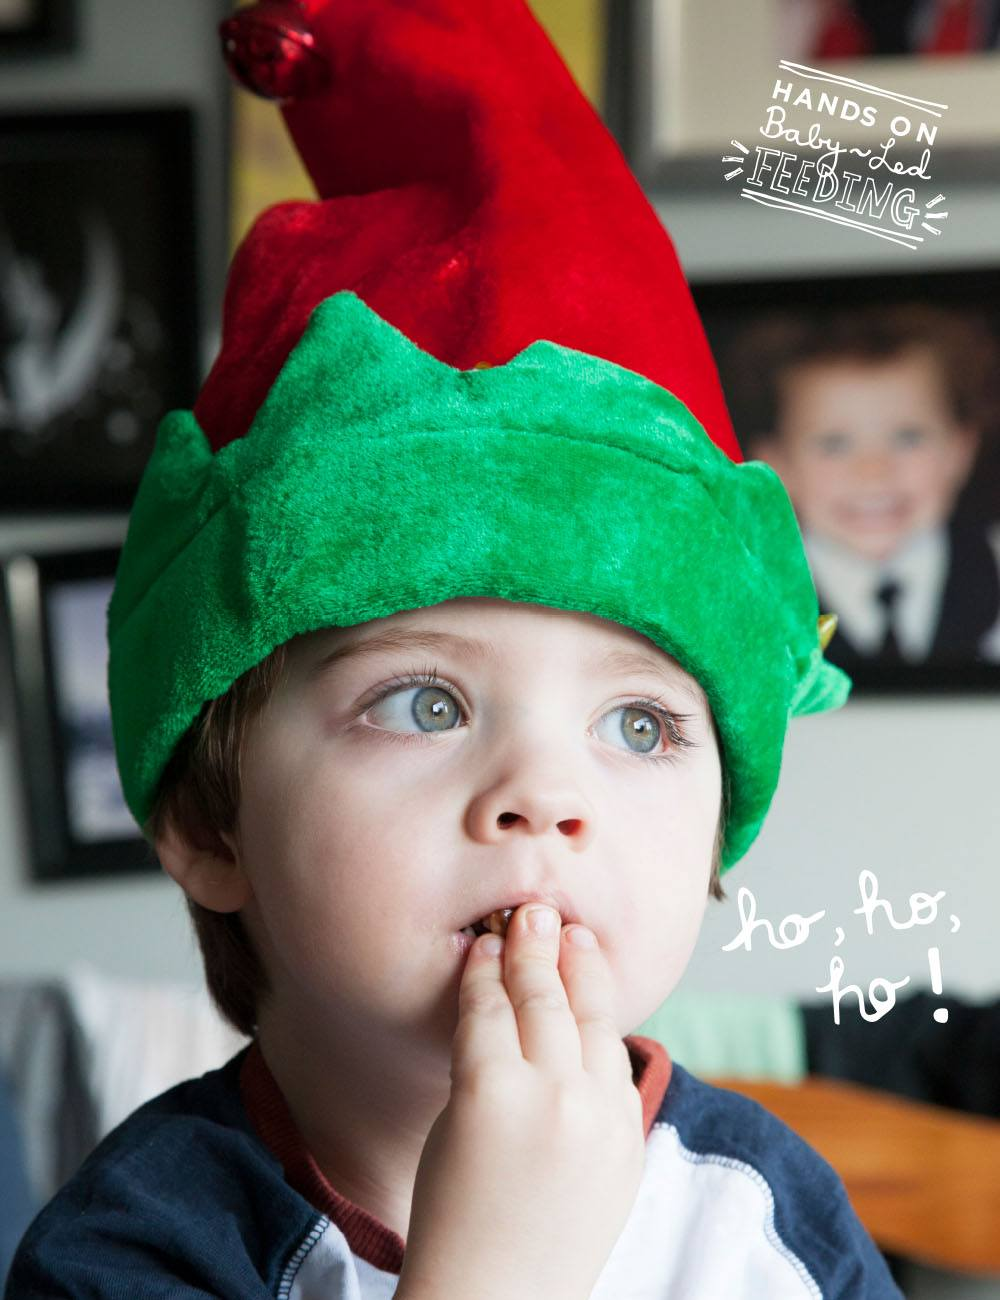 Healthy Wafer Thin Mints, Healthy After Eights Baby Led Feeding Delicious treats perfect for Christmas baby led weaning.Oscar eating healthy chocolate for baby led weaning recipe for Christmas. Christmas ideas for baby led weaning.